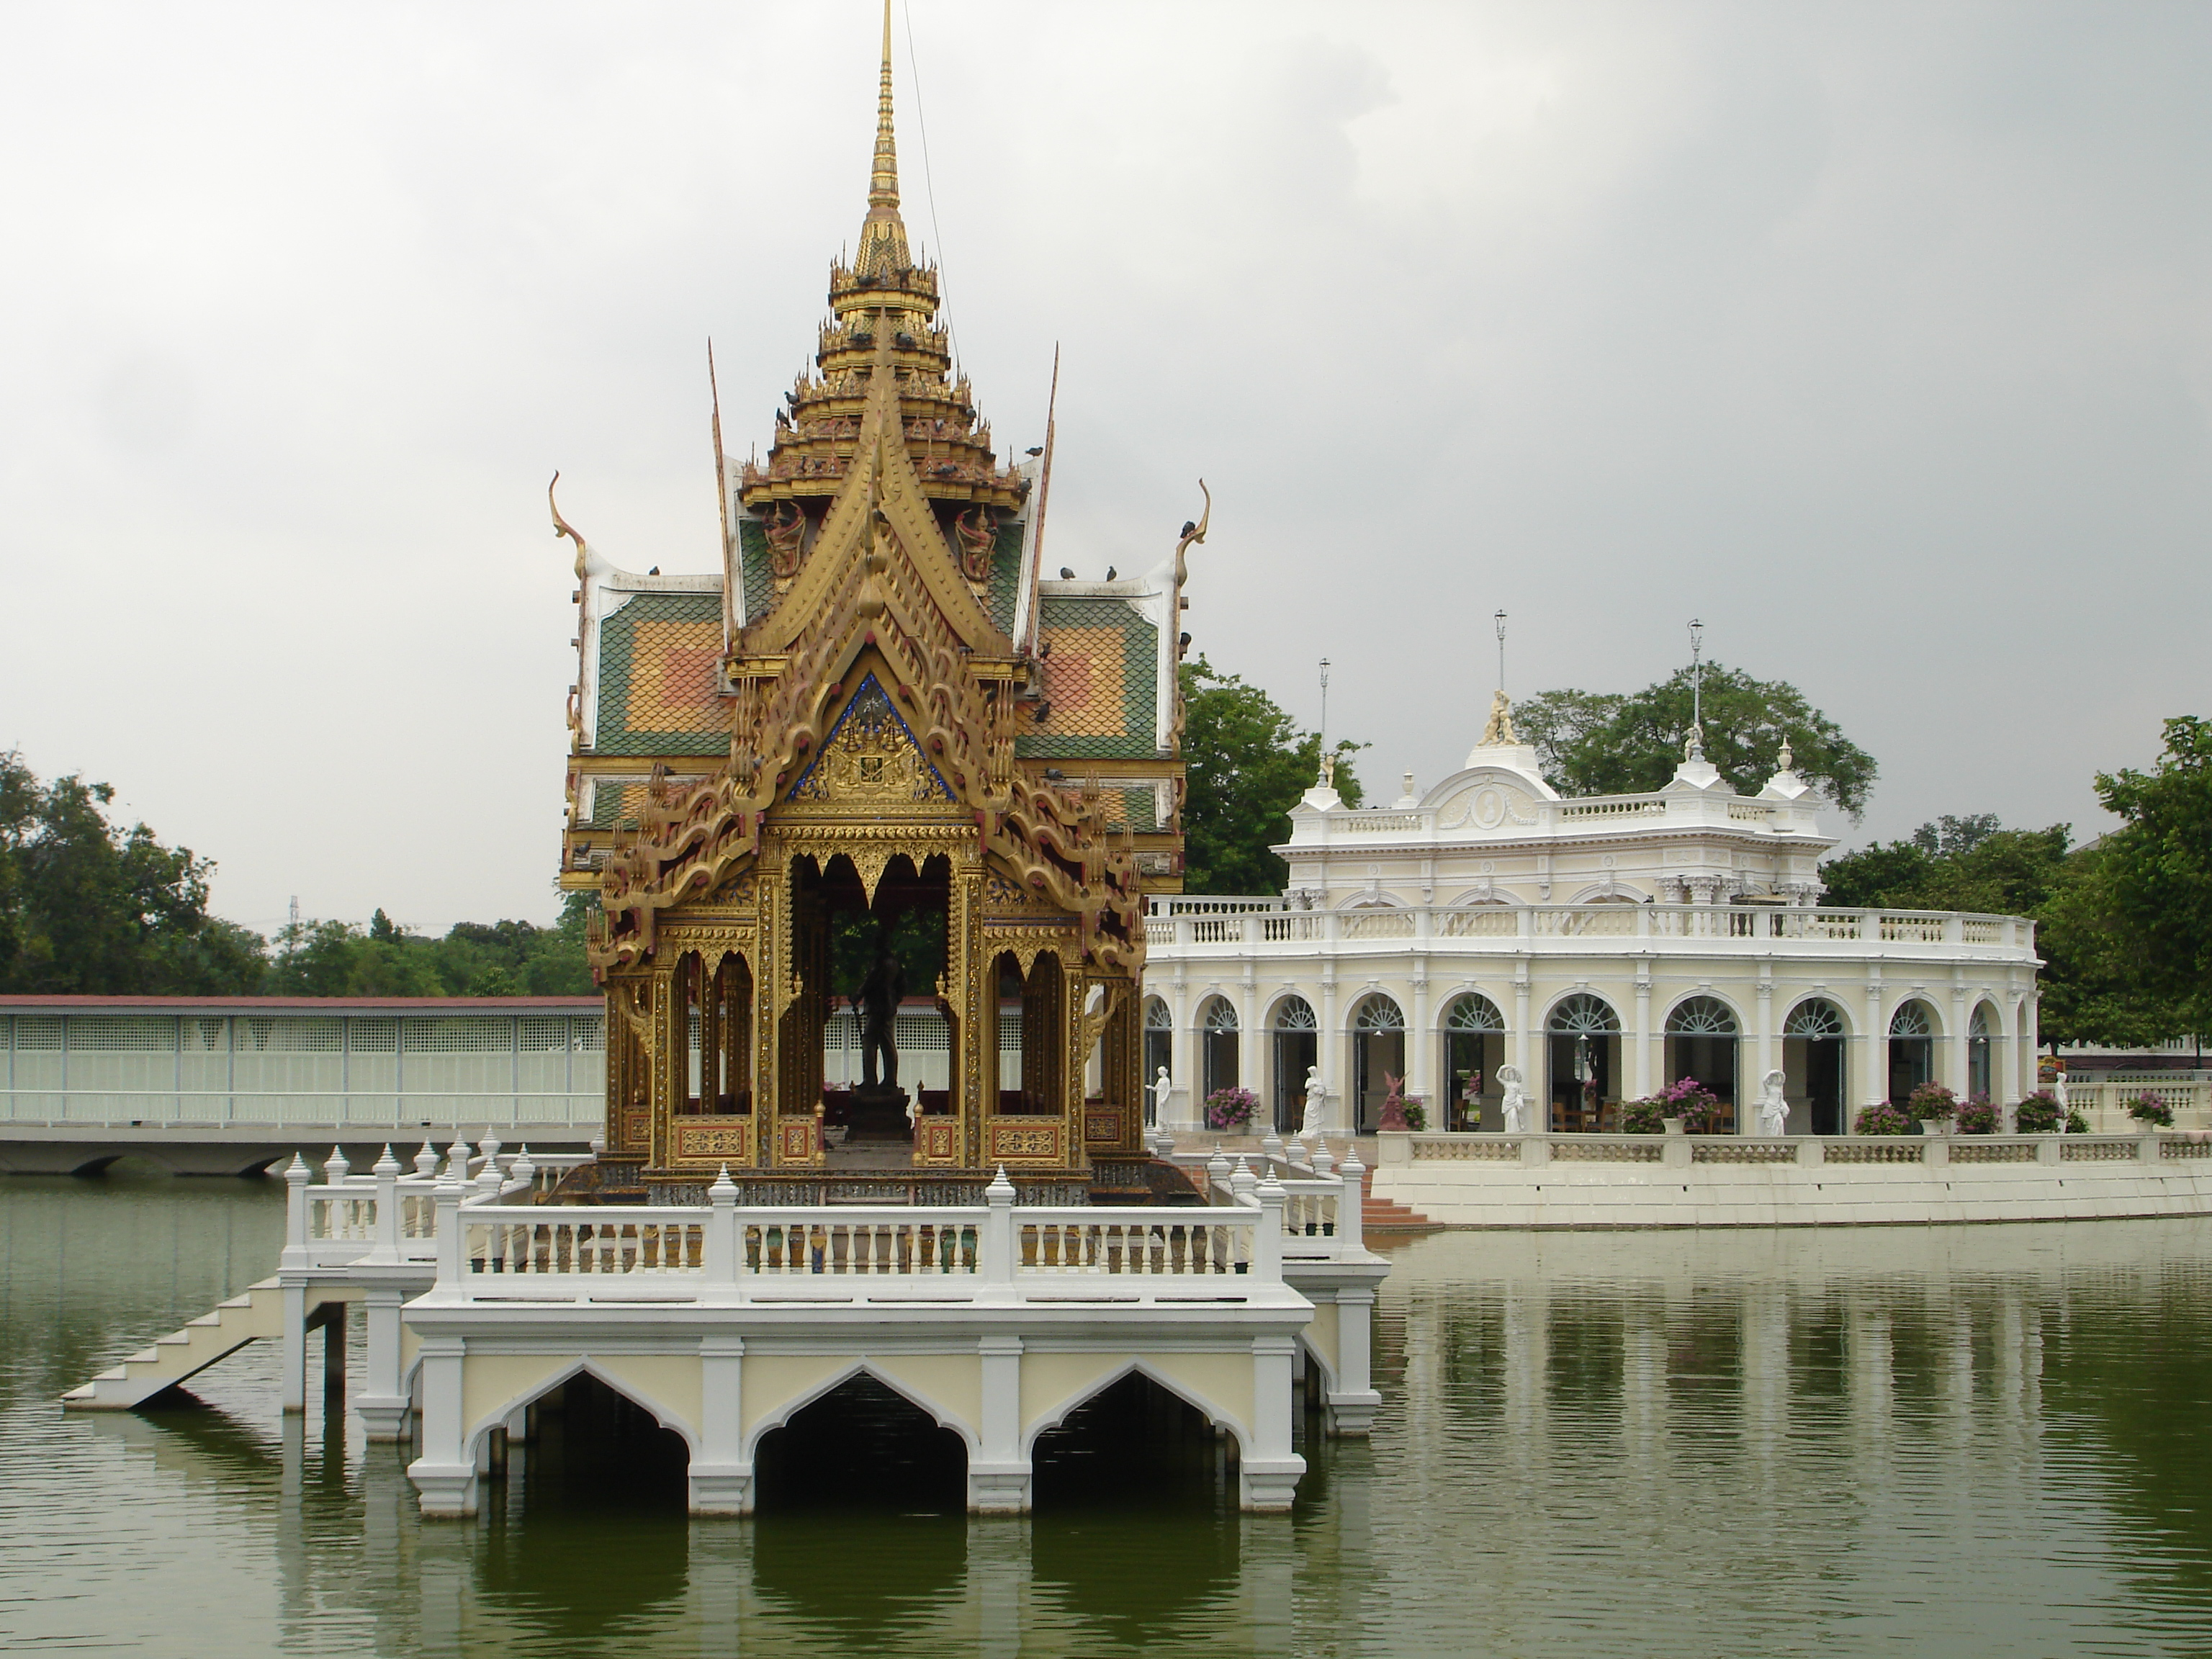 Phra Thinang Aisawan Thiphya-Art Pavilion in the Outer Palace compound at Bang Pa-In Royal Palace. The covered bridge to shield ladies of the court leading to the Inner Palace can be seen in the left background. Photos taken by Mark Jochim on May 16, 2006.